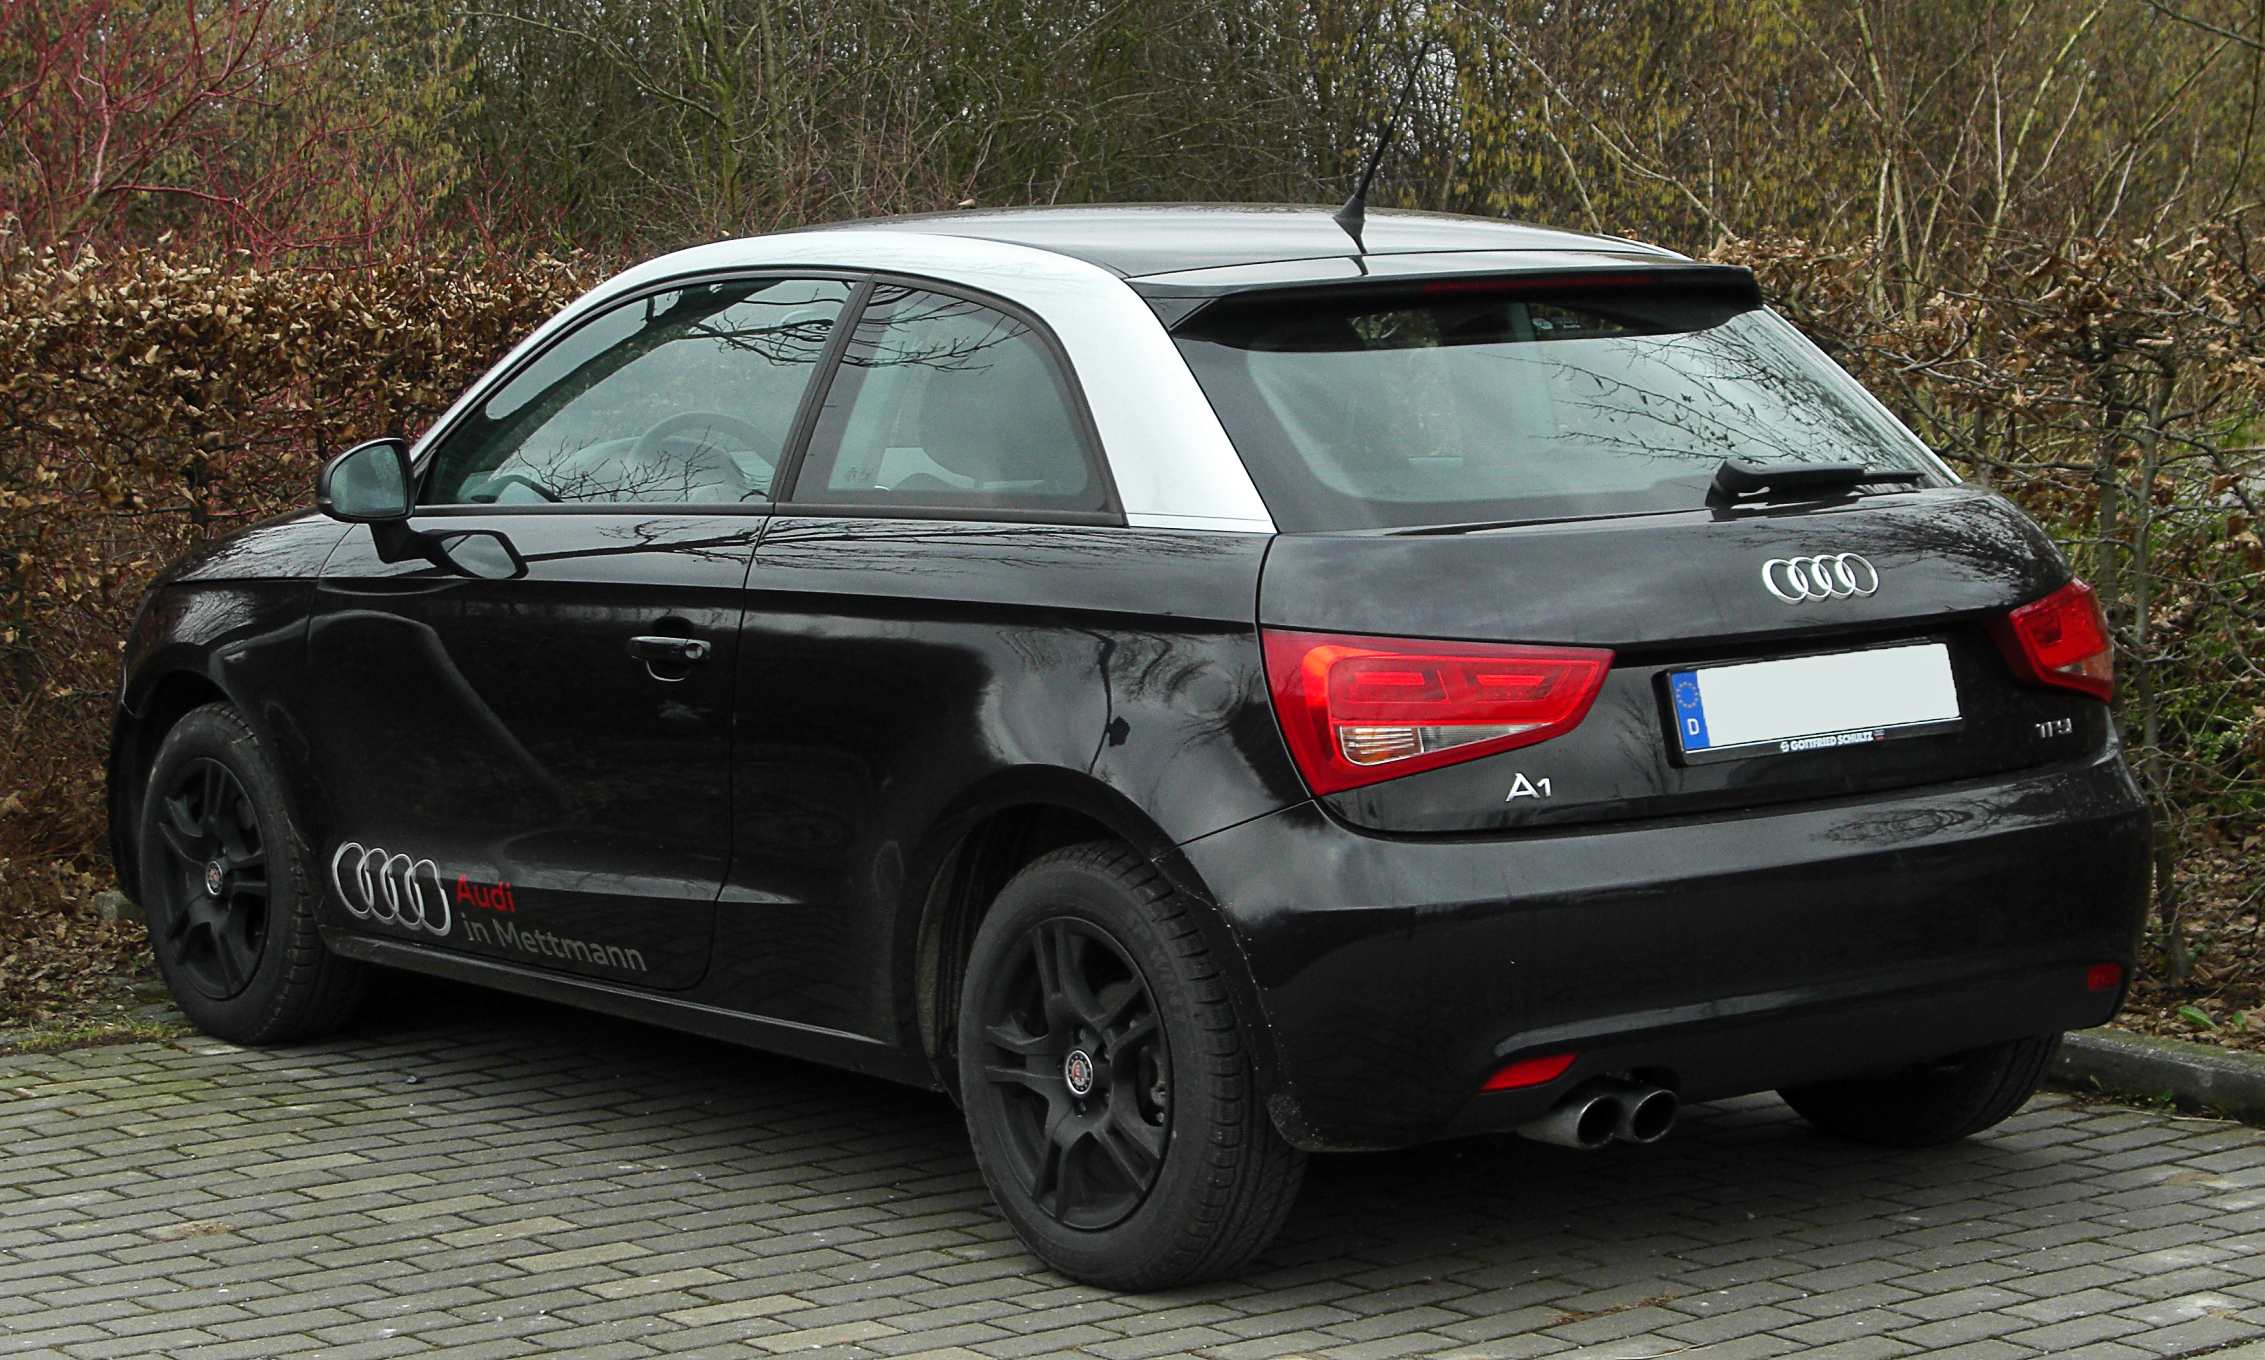 File:Audi A1 1.4 TFSI Ambition rear 20110206, Wülfrath.jpg - Wikimedia Commons